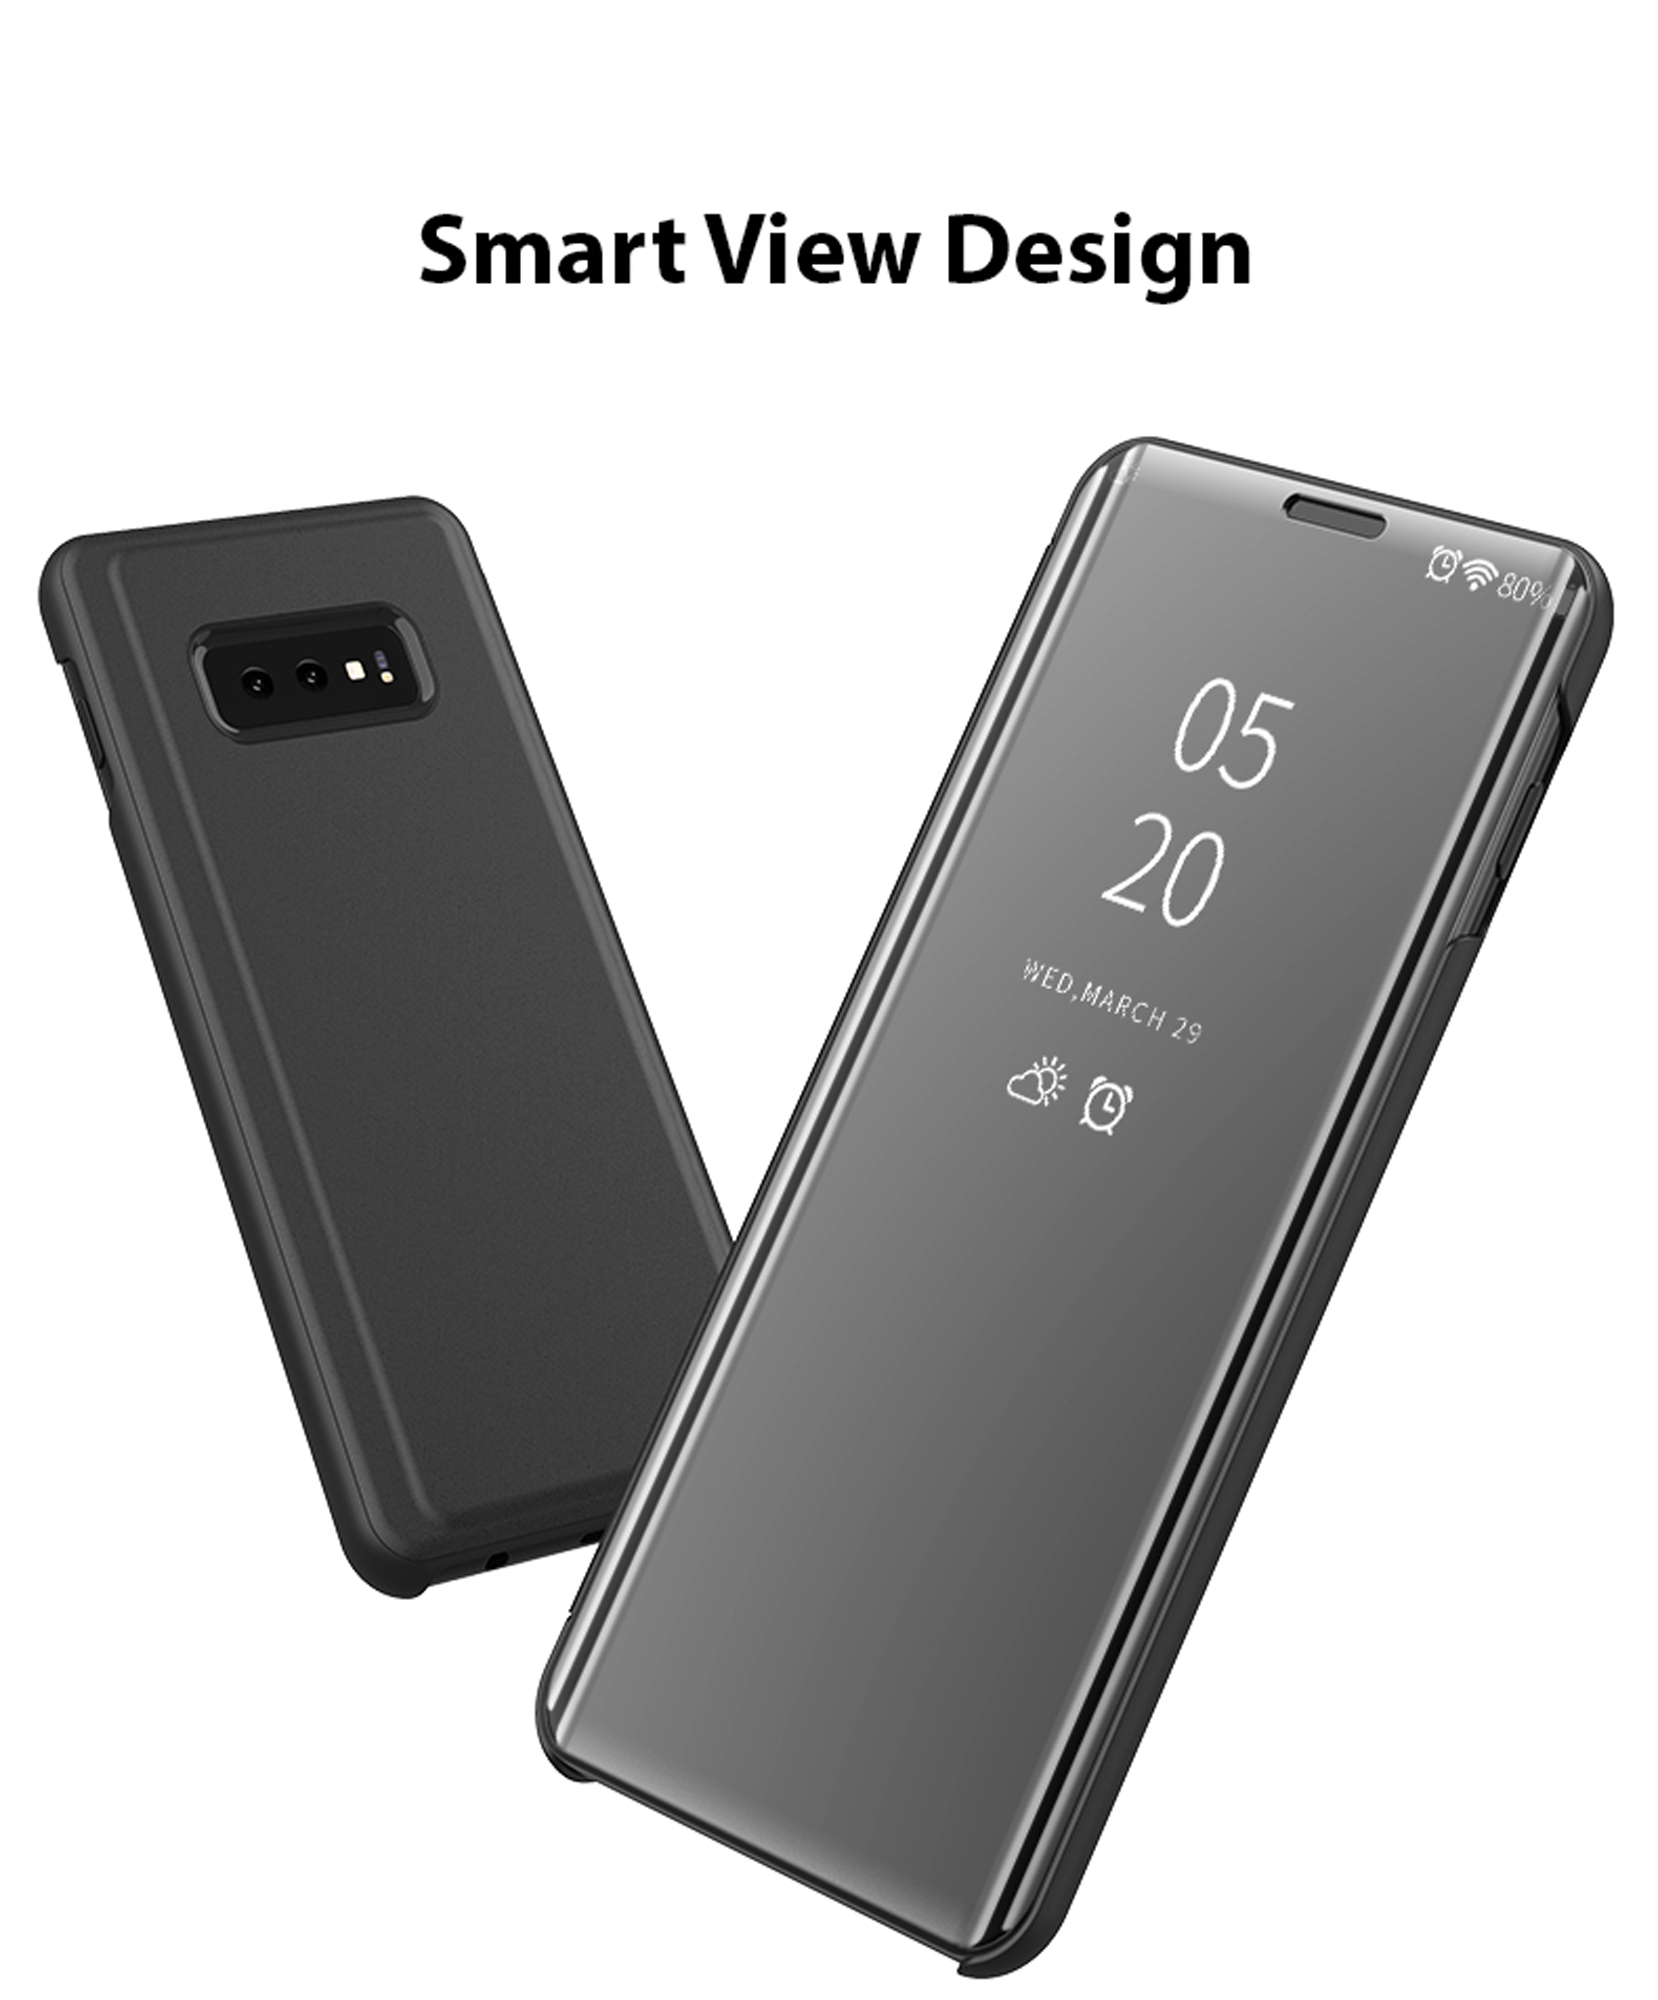 New-Samsung-Galaxy-S9-S10-Plus-Smart-View-Mirror-Leather-Flip-Stand-Case-Cover thumbnail 62